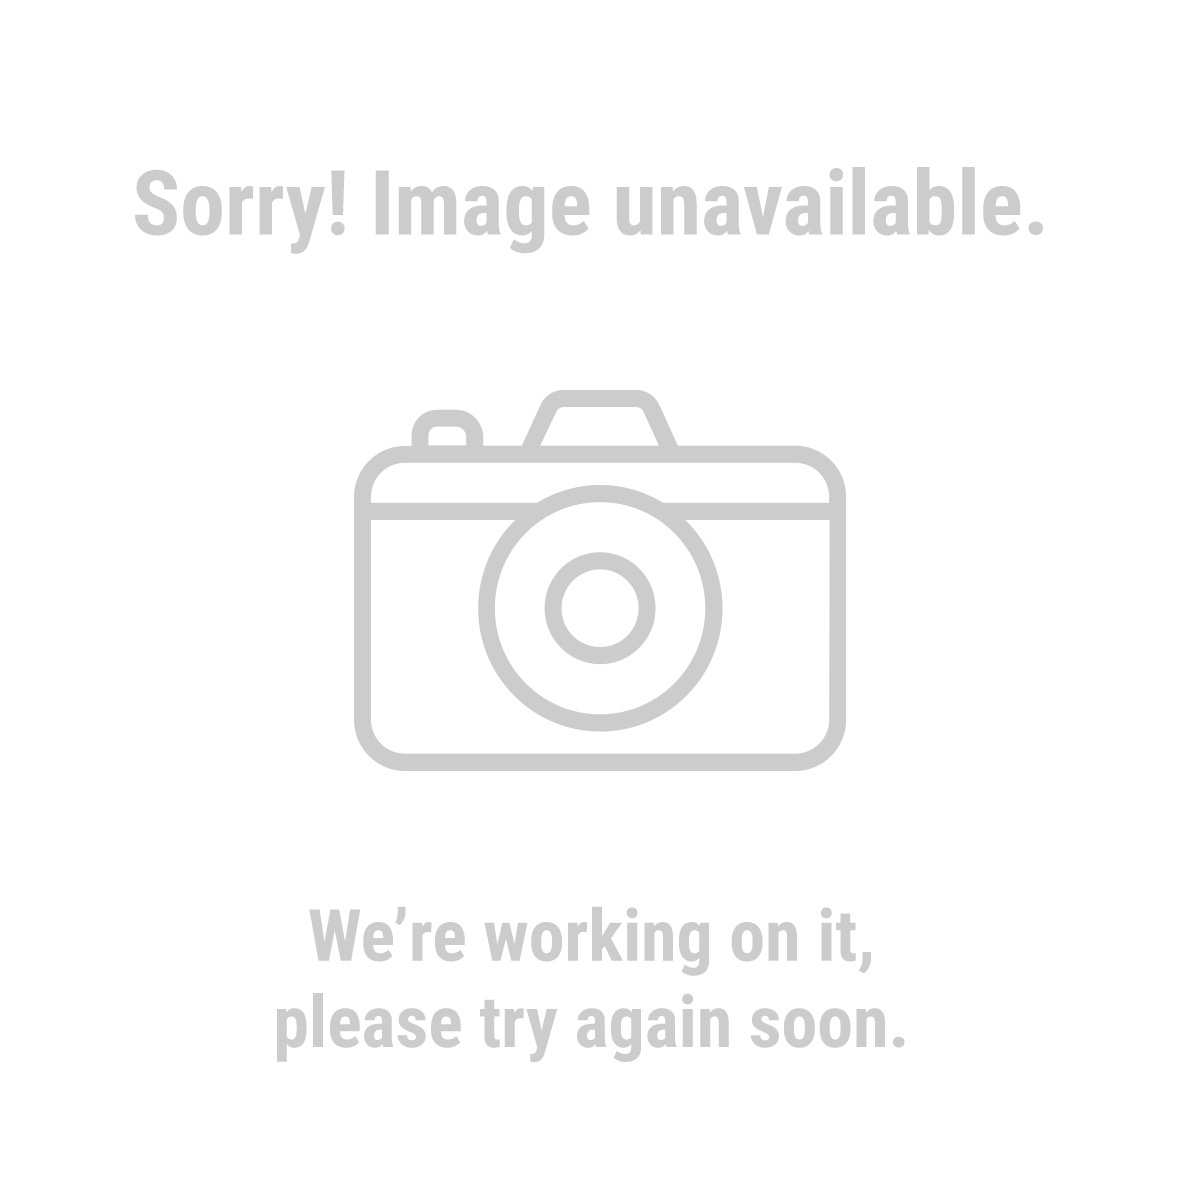 7 Piece SAE Professional Nut Driver Set